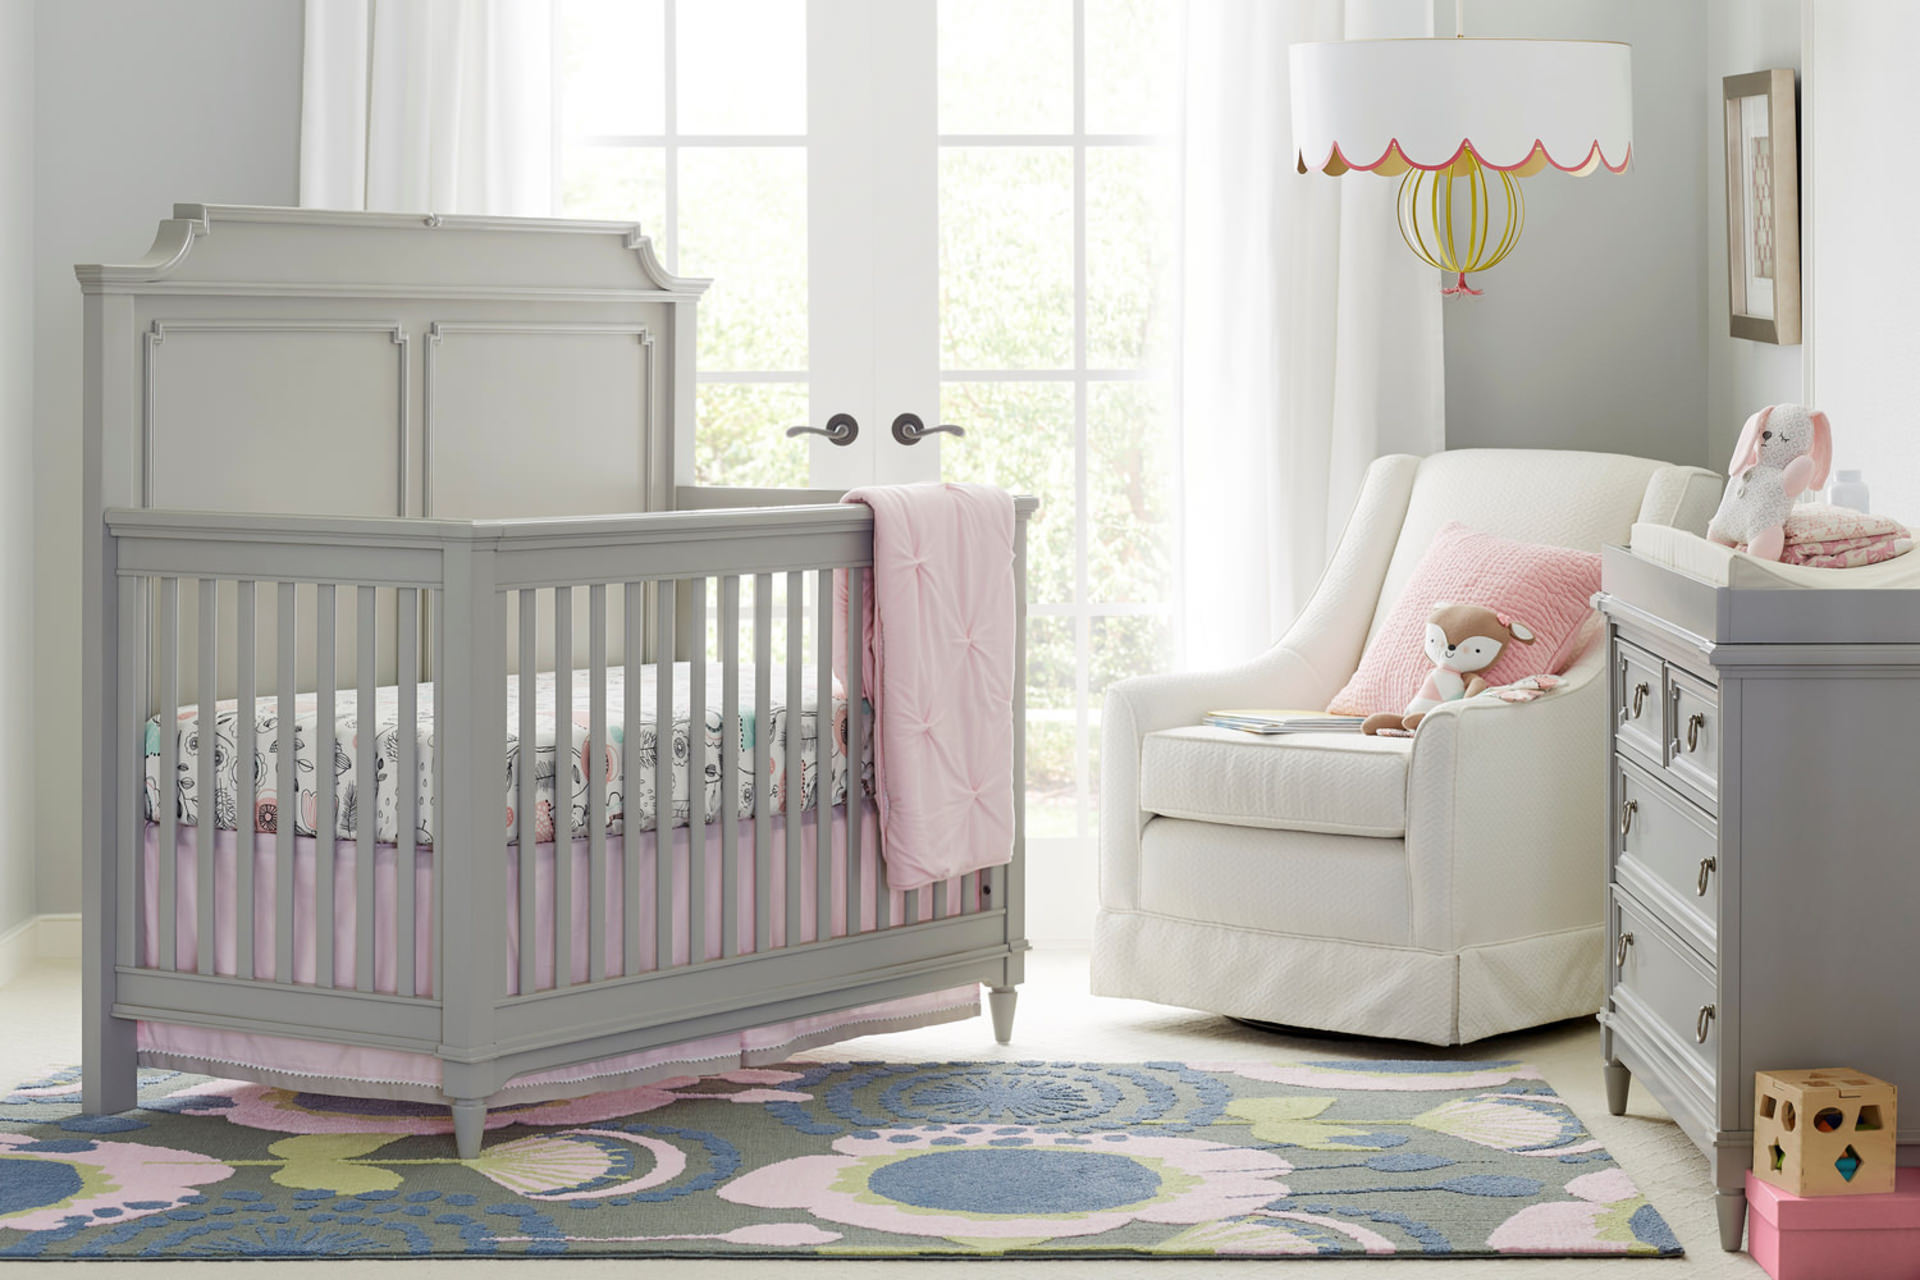 nursery trends for 2018 design blog by hom furniture 10156 | 412019 1